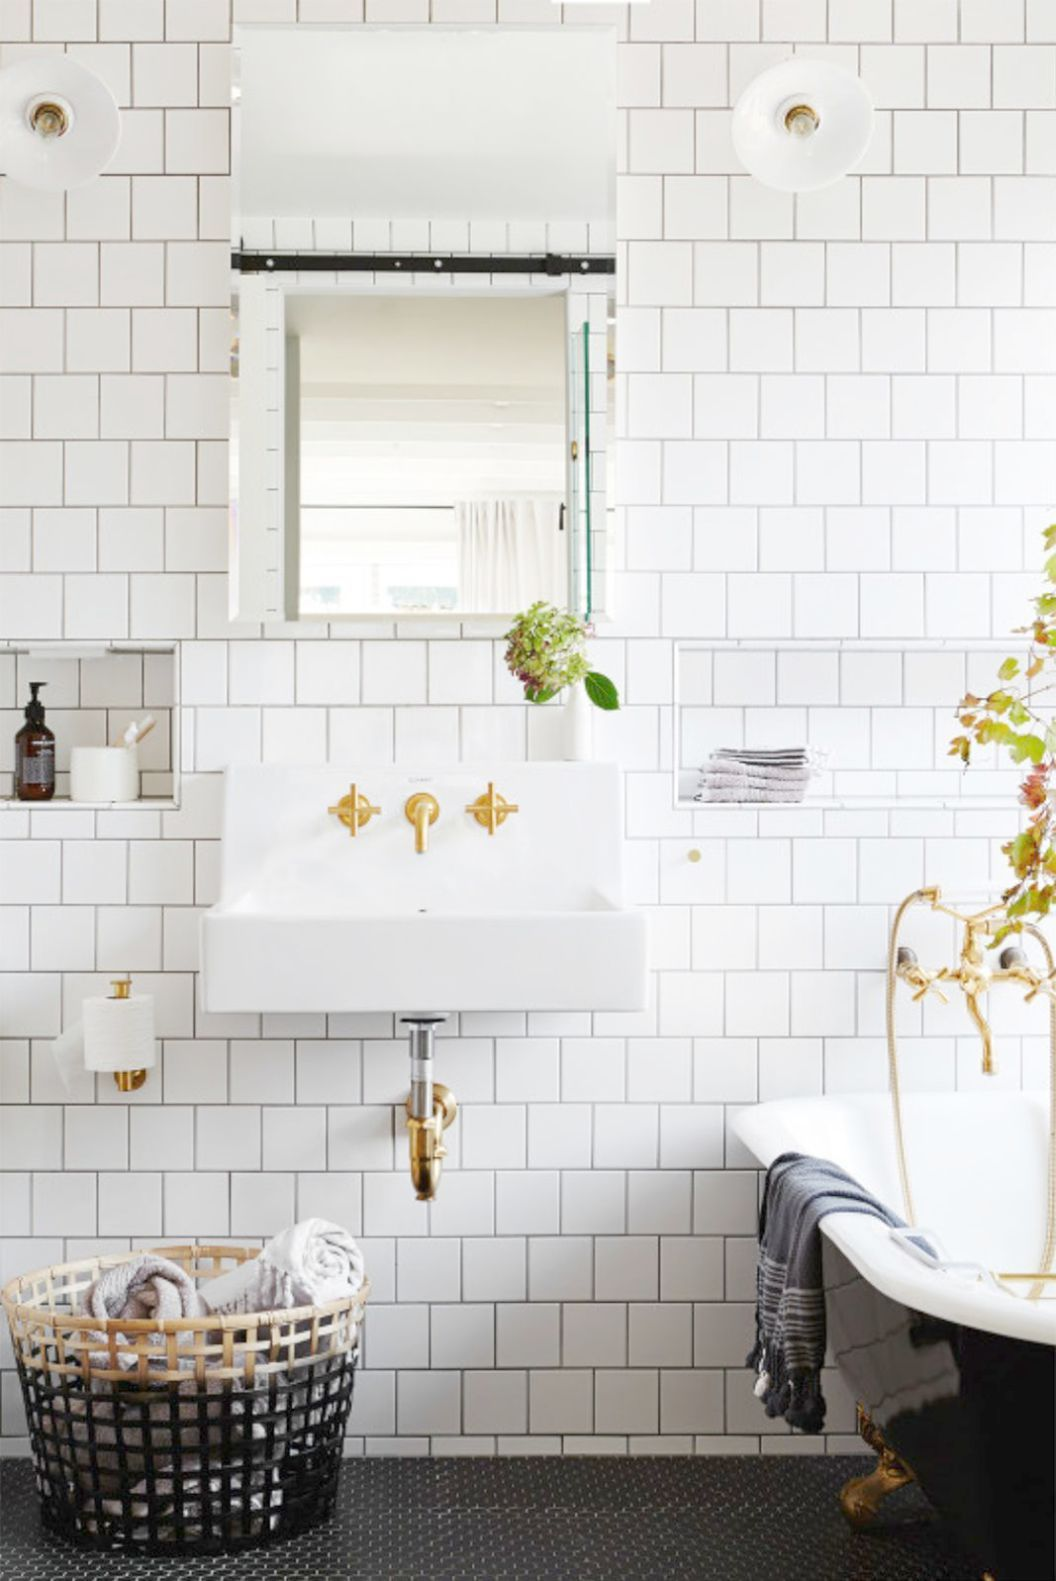 Bathroom Cabinets Knoxville Tn lest Bathroom Decor Accents upon